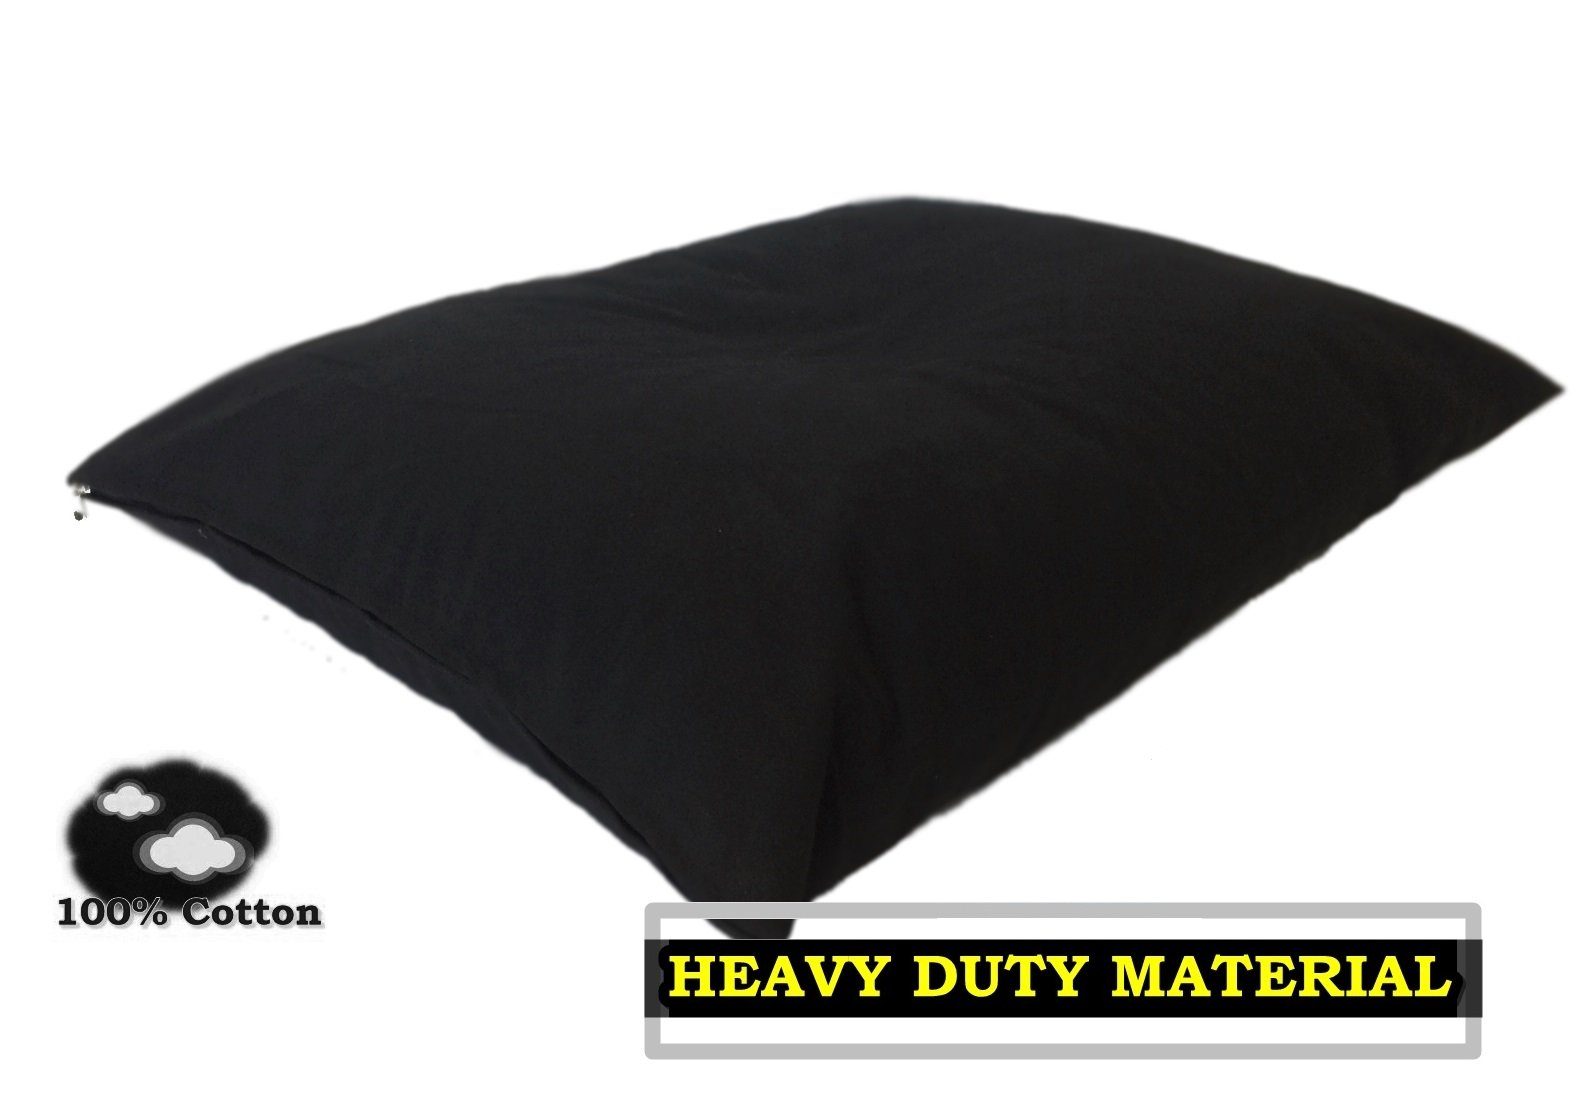 Durable Comfort Micro-cushion Memory Foam Pet Dog Pillow Bed with Waterproof Liner + External Cover for S,M,L Dogs- Complete Set (Black Canvas, 47''x29'')